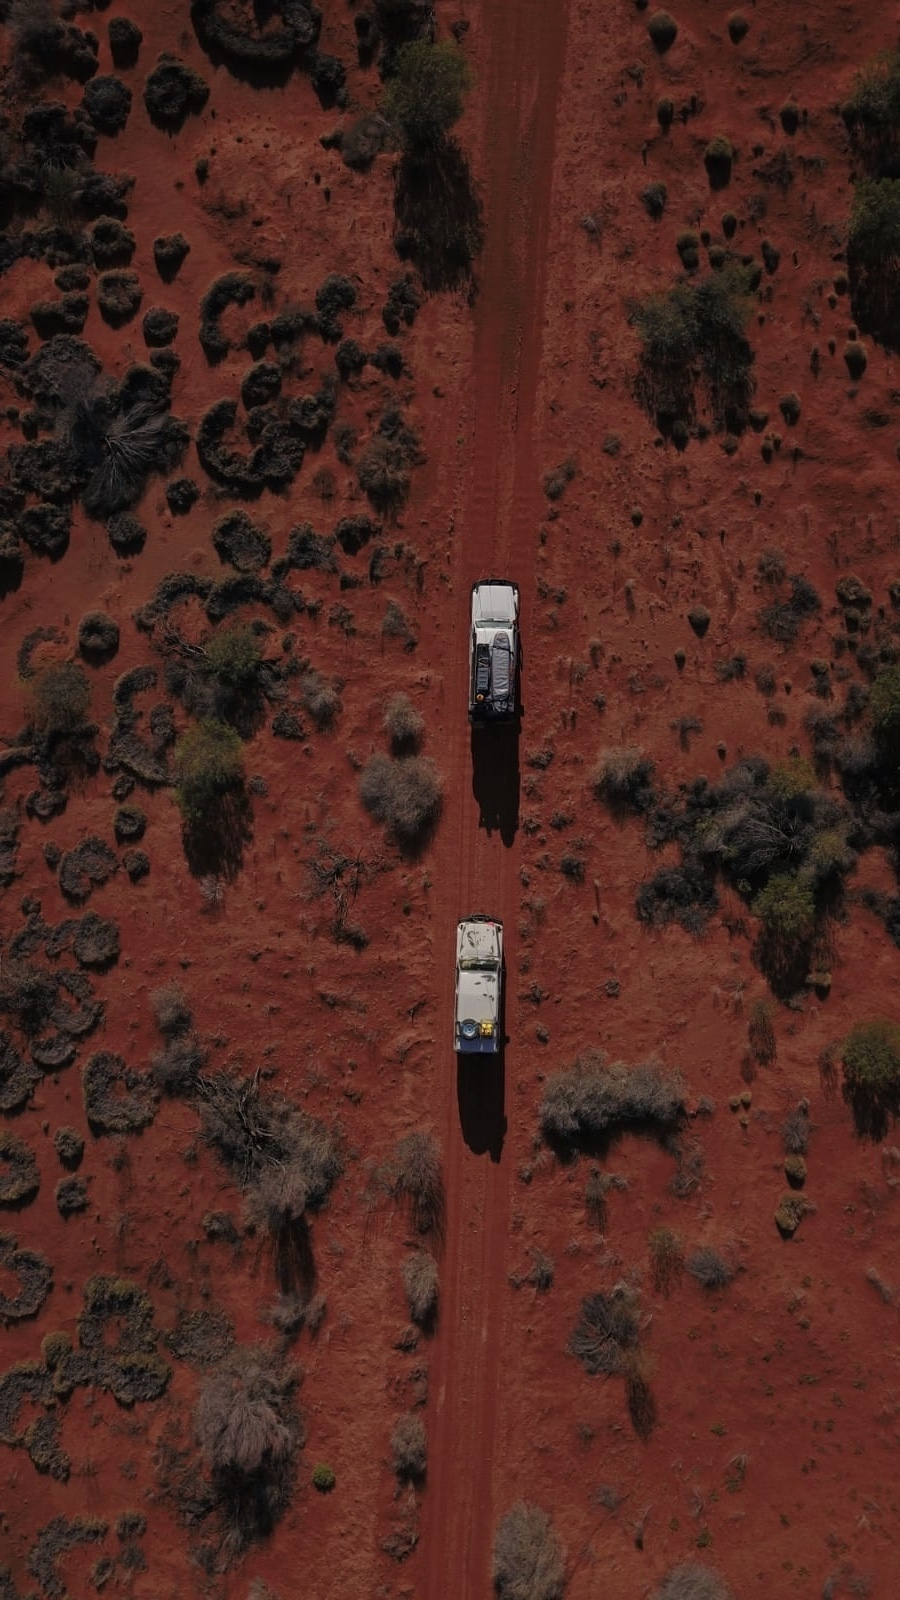 How To 4WD For Beginners, Eva Davis-Boermans, car, troopy, drone shot, desert, red sand